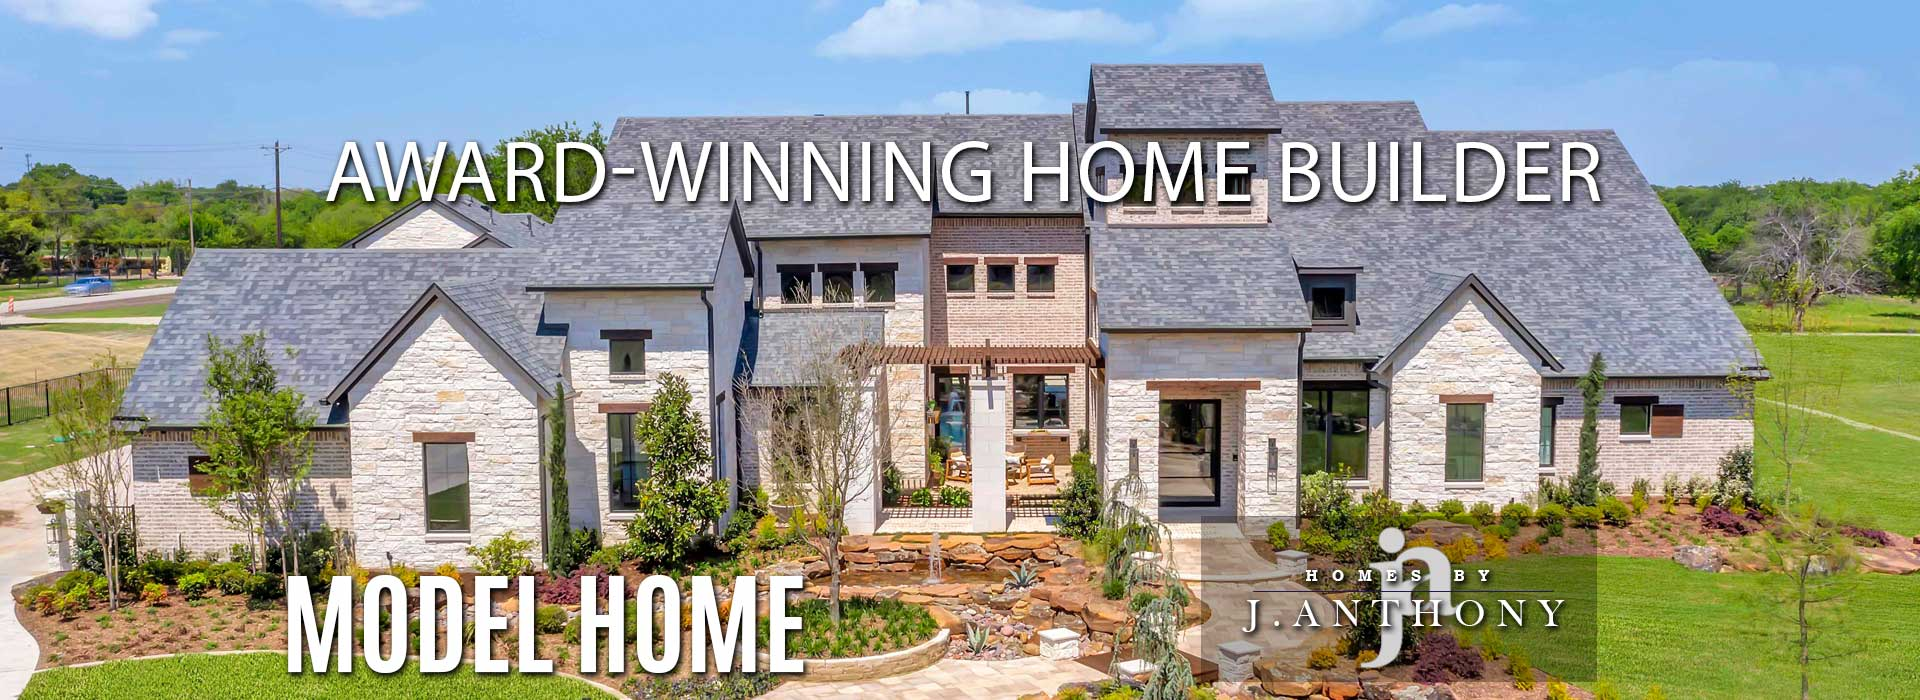 Award Winning Custom Home Builder-Homes By J Anthony Completed Home Showcase- Barry Farms Community, Lucas TX, Lovejoy ISD